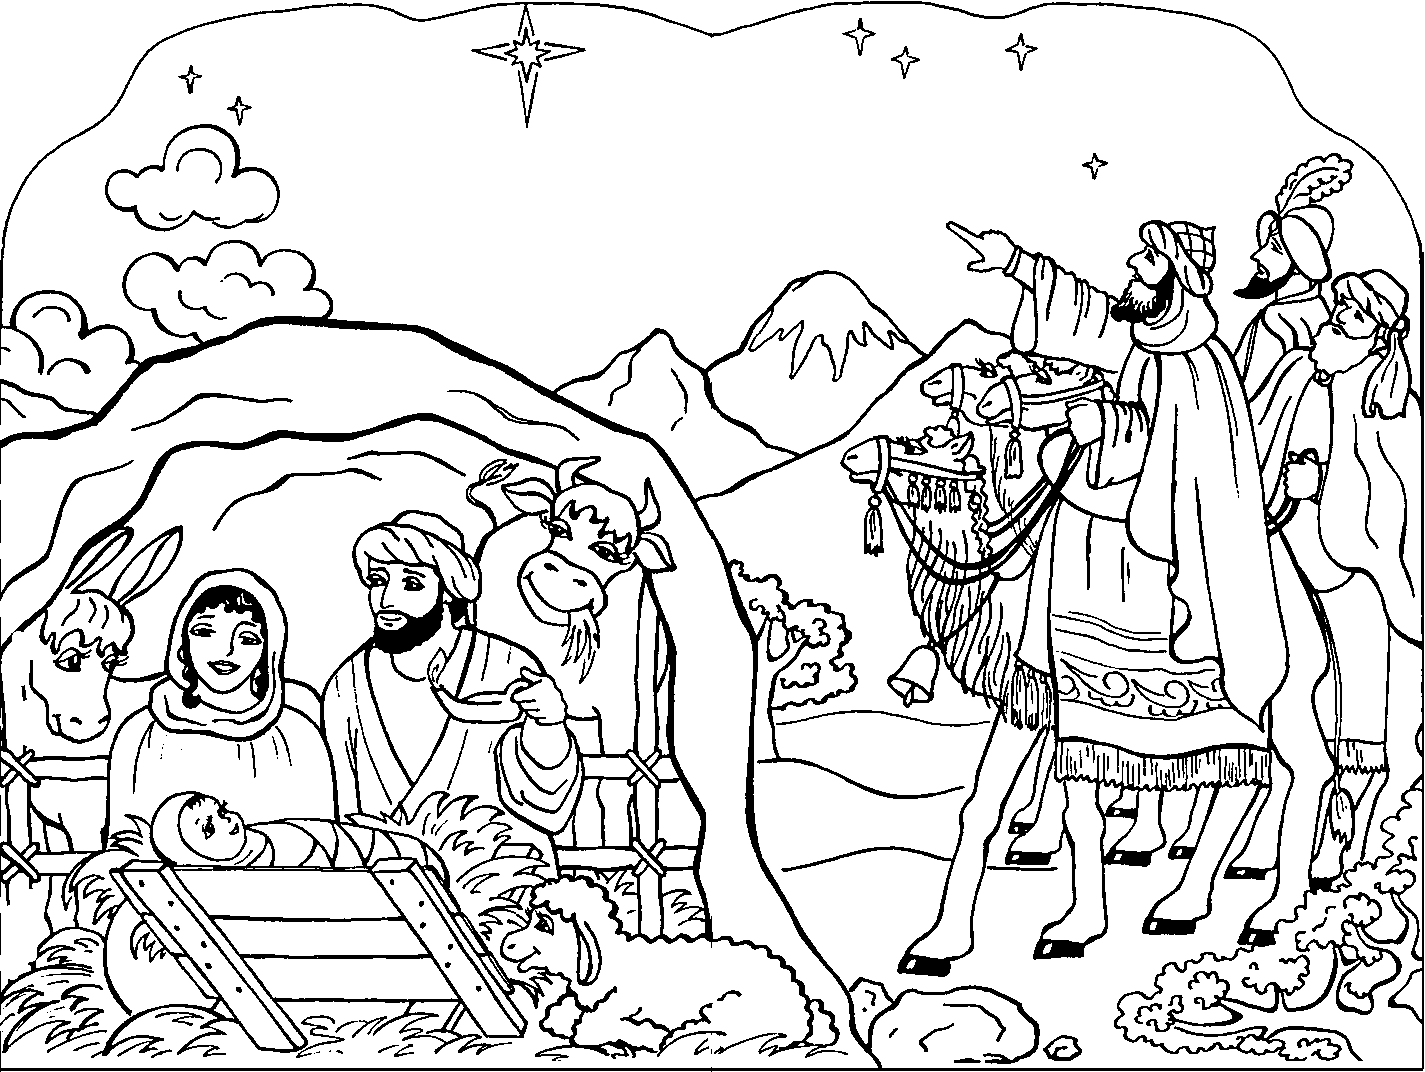 coloring nativity scene printable nativity scene coloring pages for kids cool2bkids nativity coloring scene